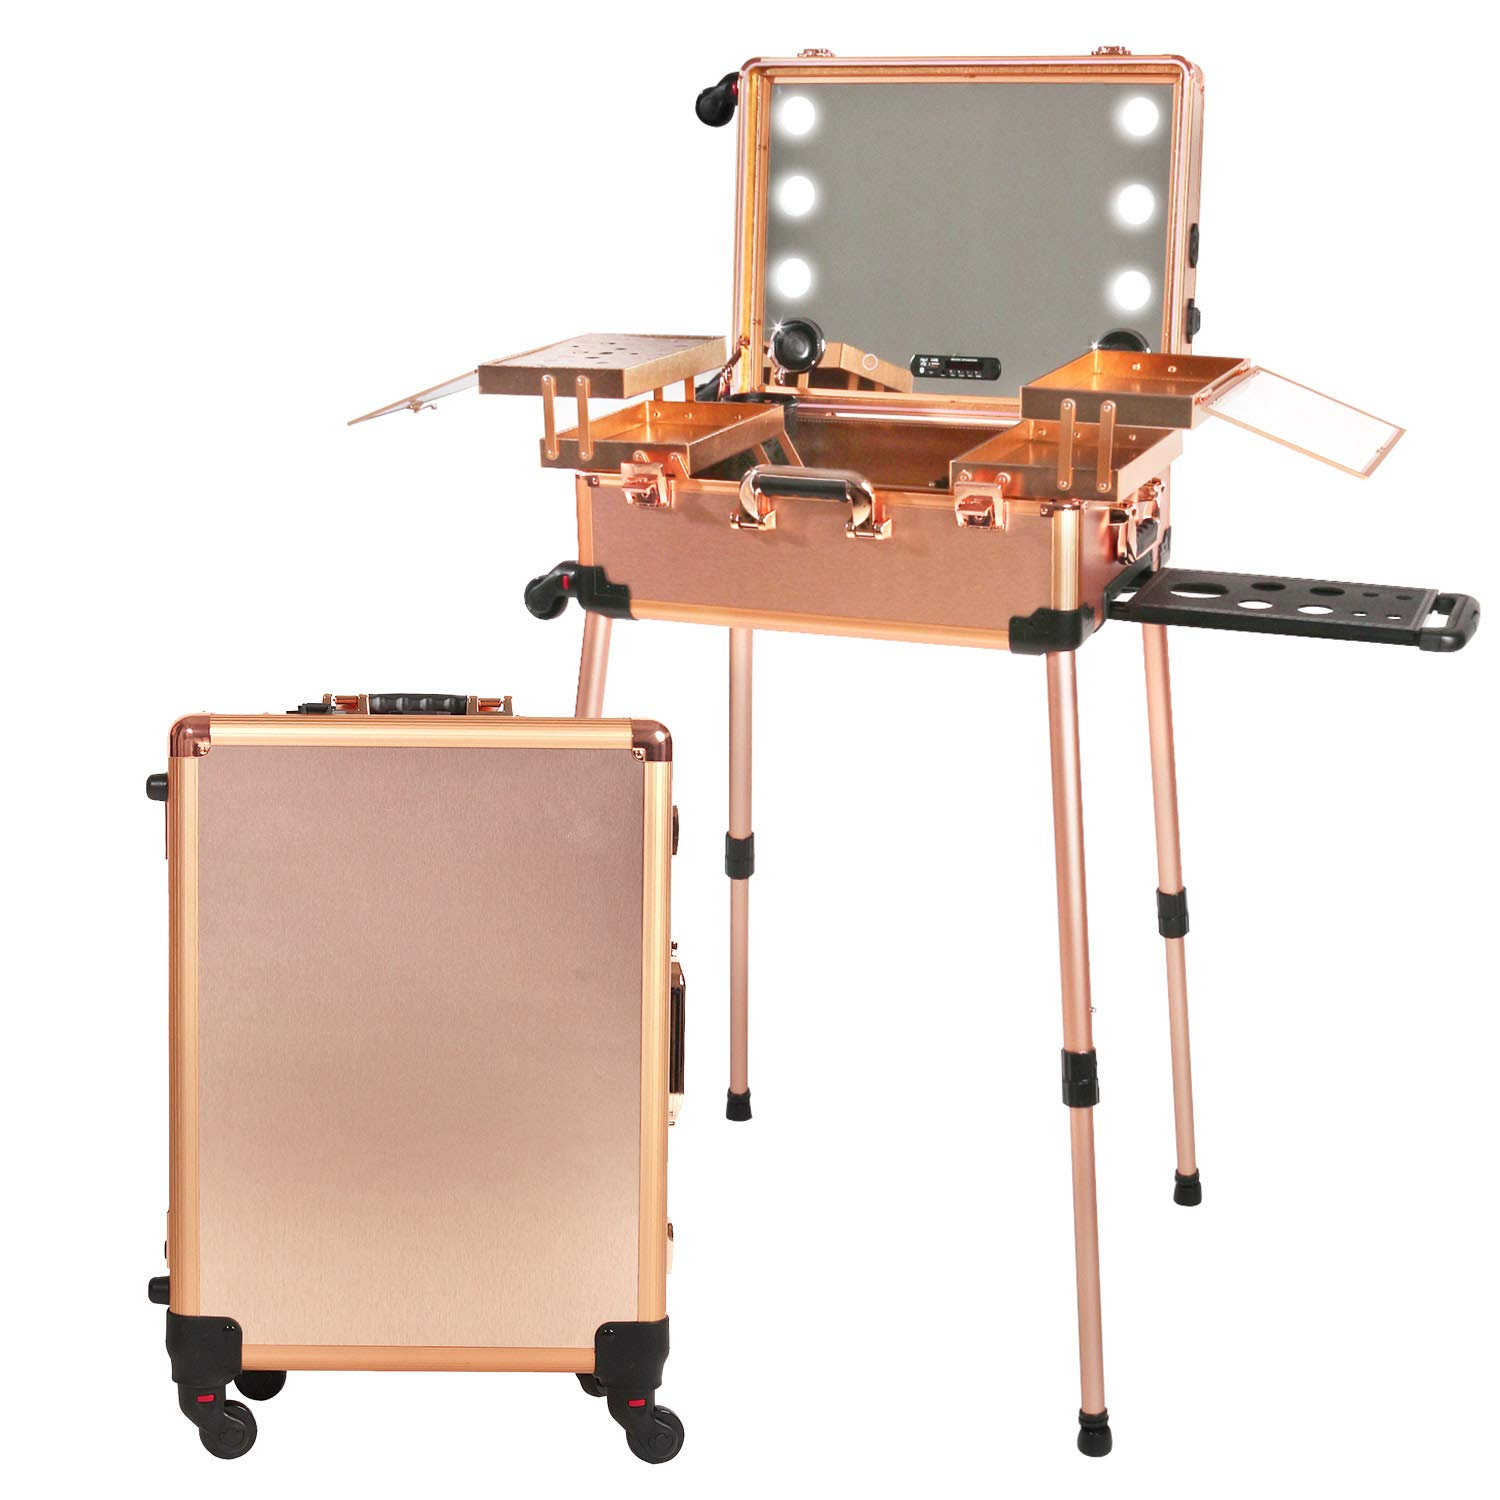 Jula Vance Makeup Train Suitcase with Built-in Lights & 3 Light Colors & Omni-Direction Wheels Lighted Rolling Travel Cosmetic Organizer, Professional Artist Trolley Studio Free Standing (Rose Golden)